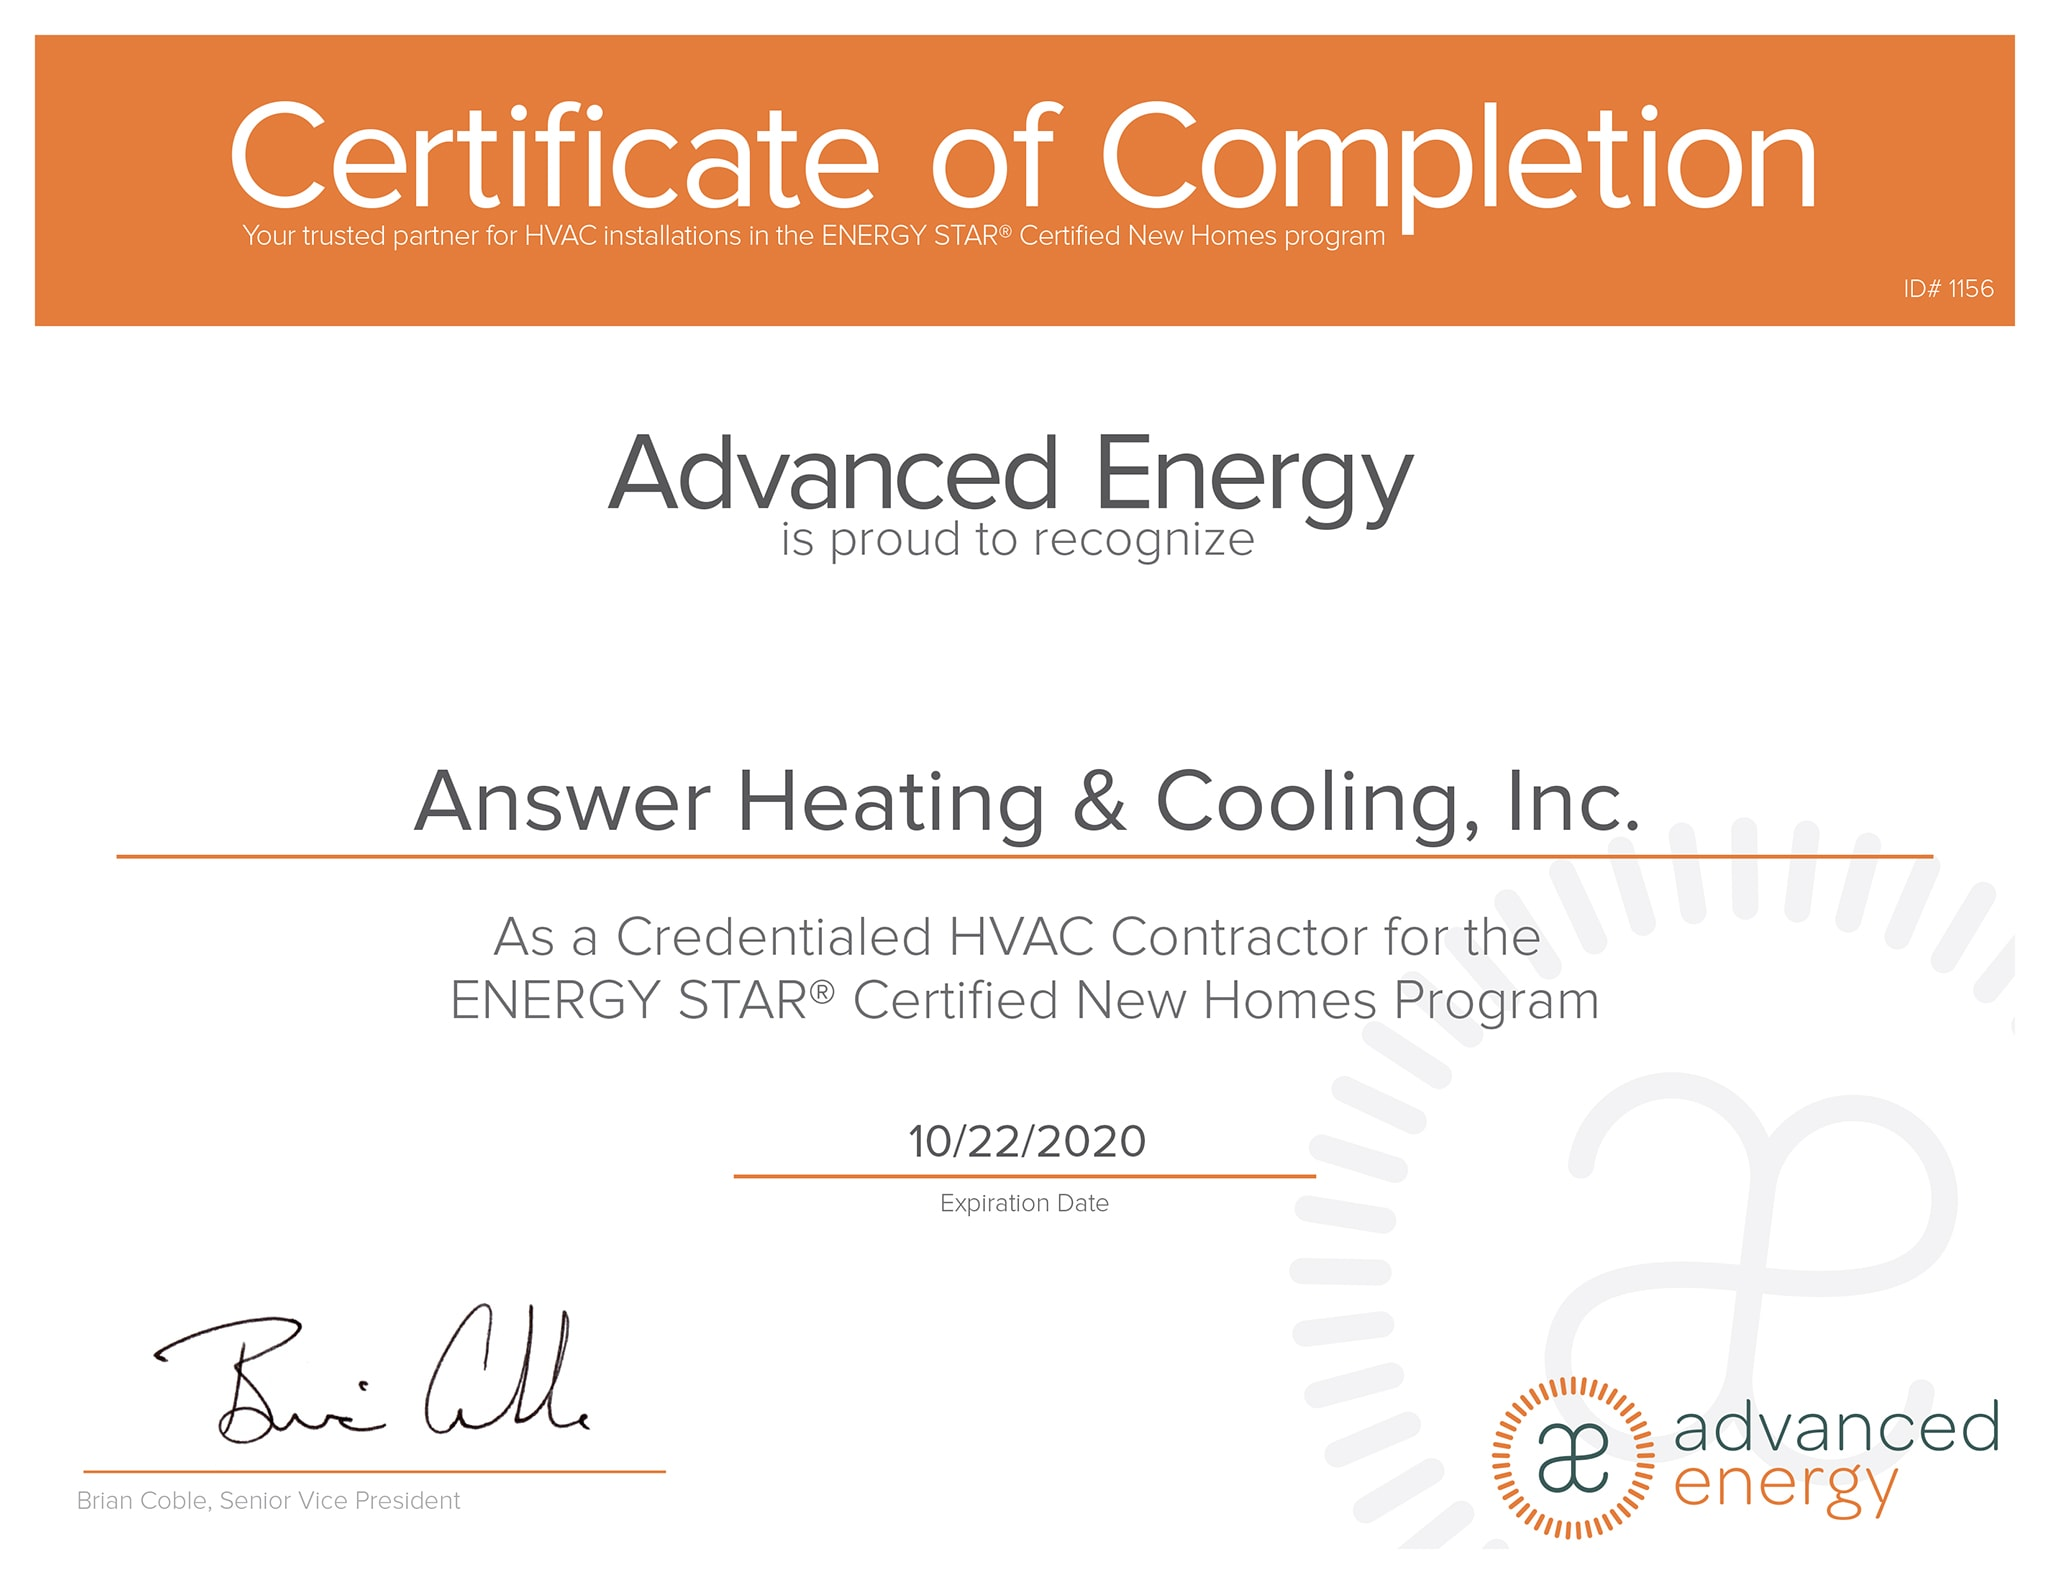 ENERGY STAR Certificate of Completion.